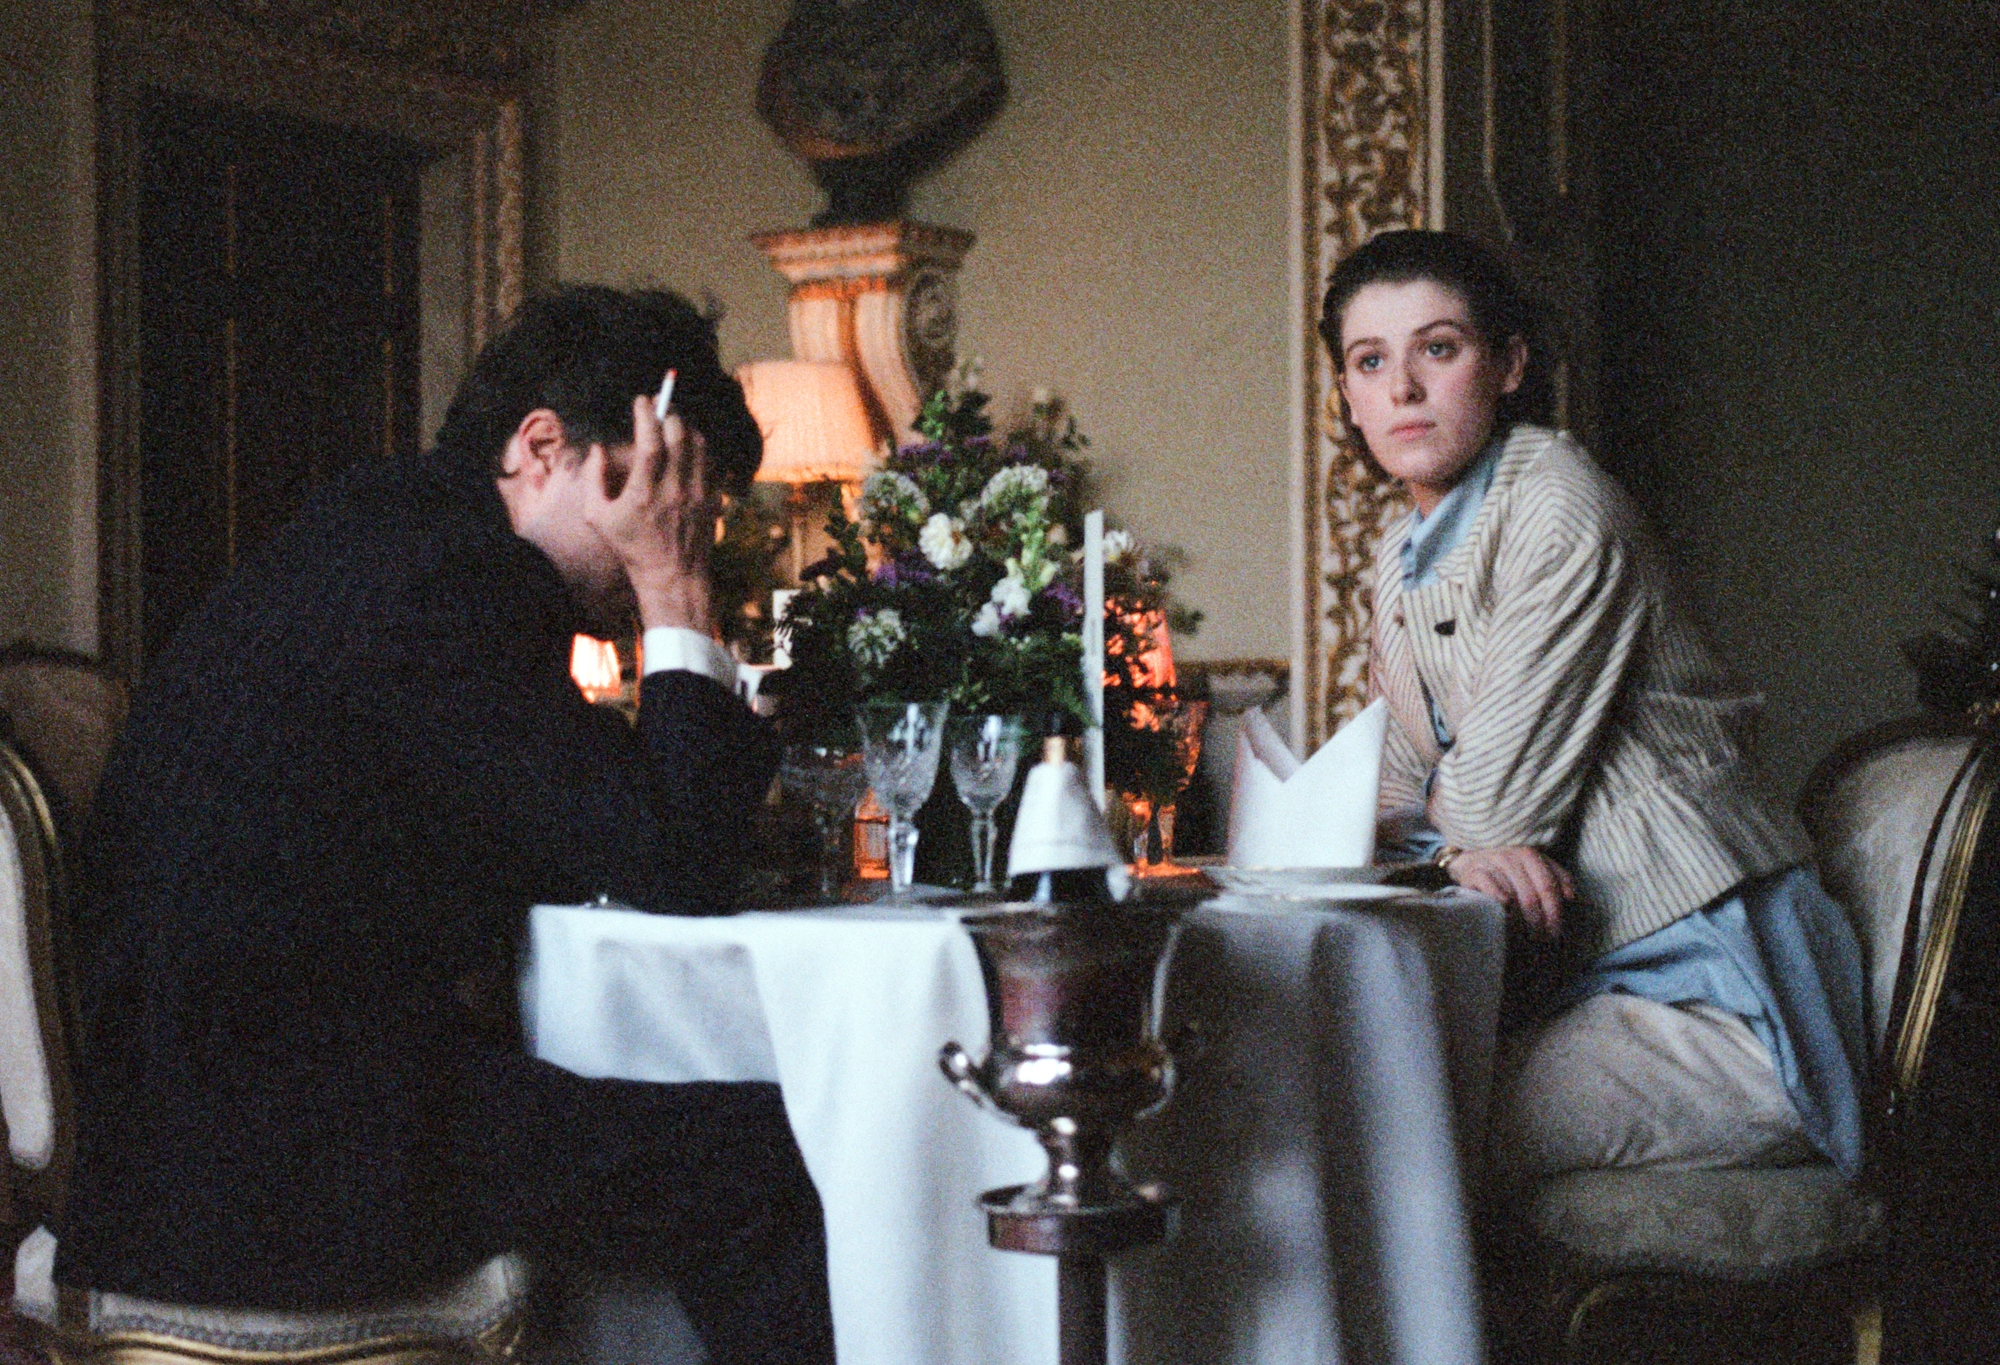 "Julie (Honor Swinton Burke, left), a young film student, strikes up an unsettling romance with an older man, Anthony (Tom Burke), in writer-director Joanna Hogg's drama ""The Souvenir."" (Photo by Agatha A. Nitecka, courtesy of A24 Films.)"